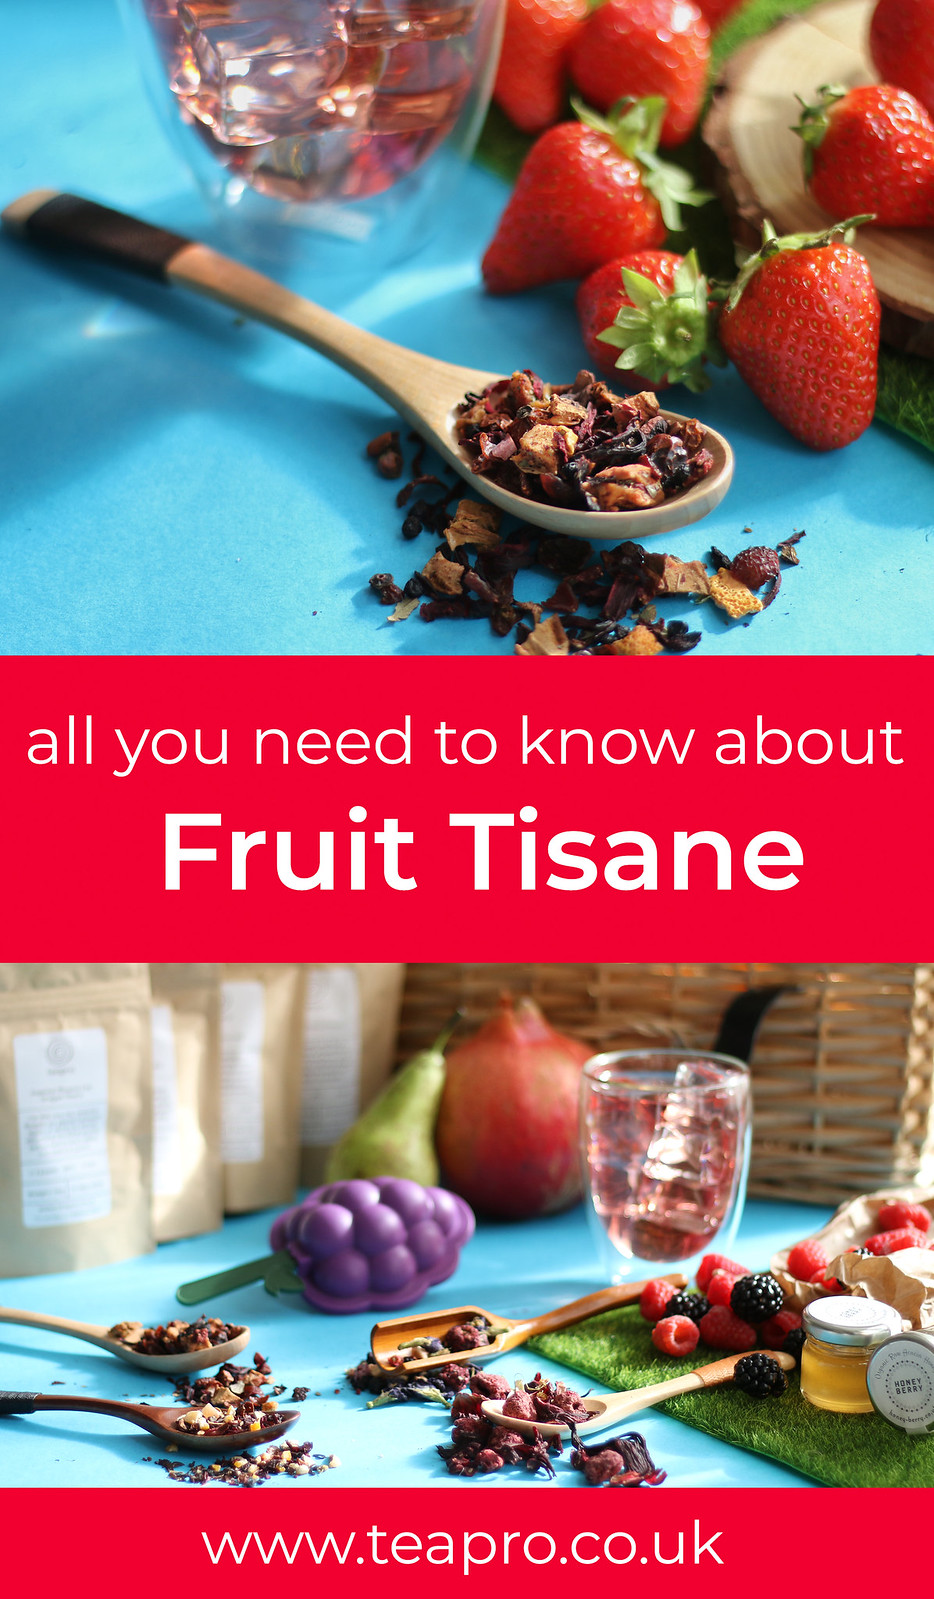 All you need to know about Fruit Tisane by teapro